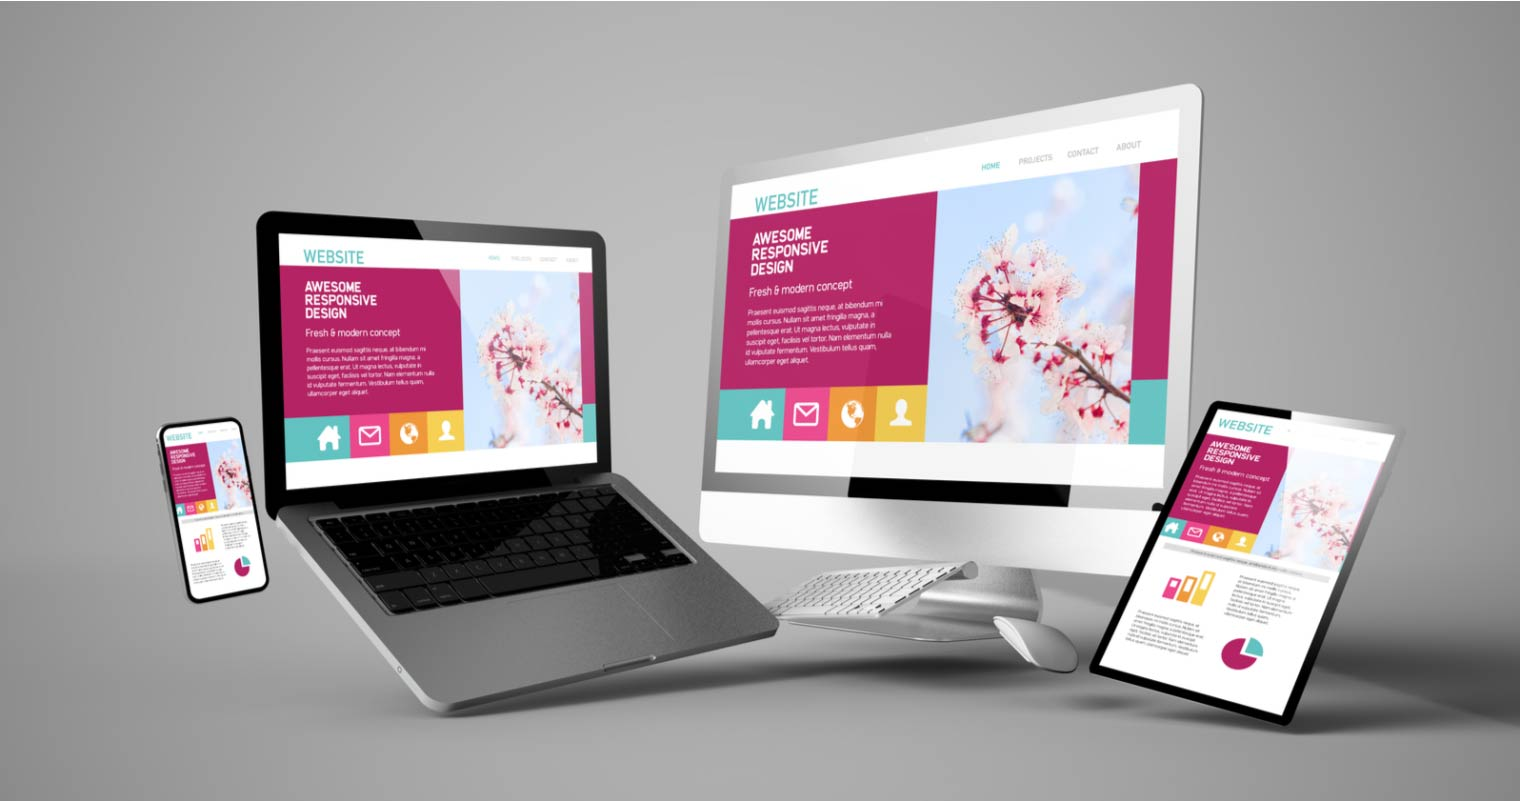 How can I learn web design from home for free?